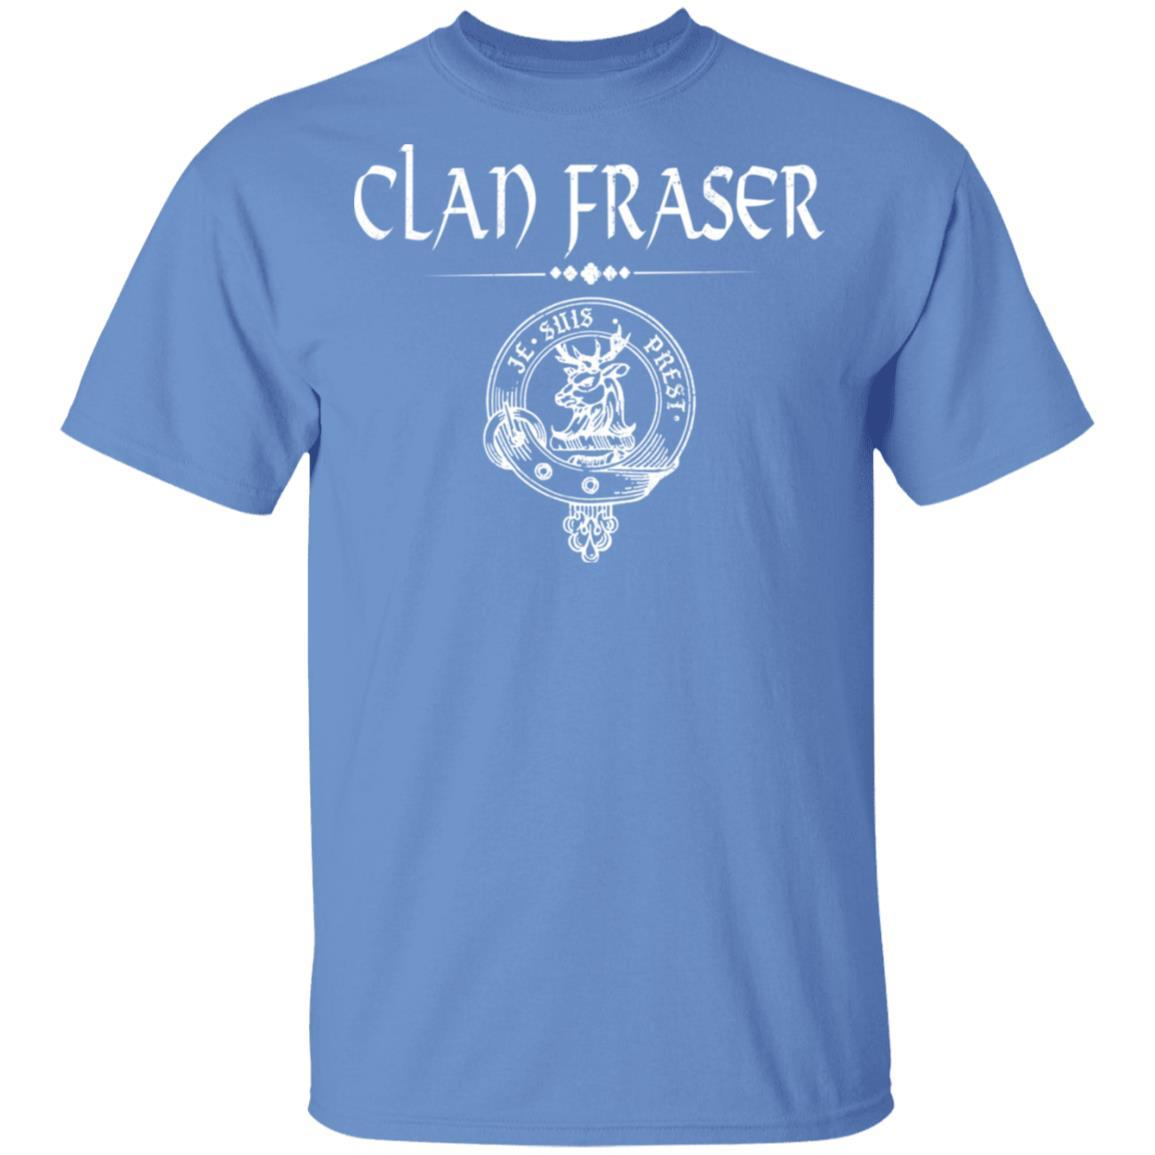 Clan Fraser Crest T-shirt Je Suis Prest Motto Scottish Gift